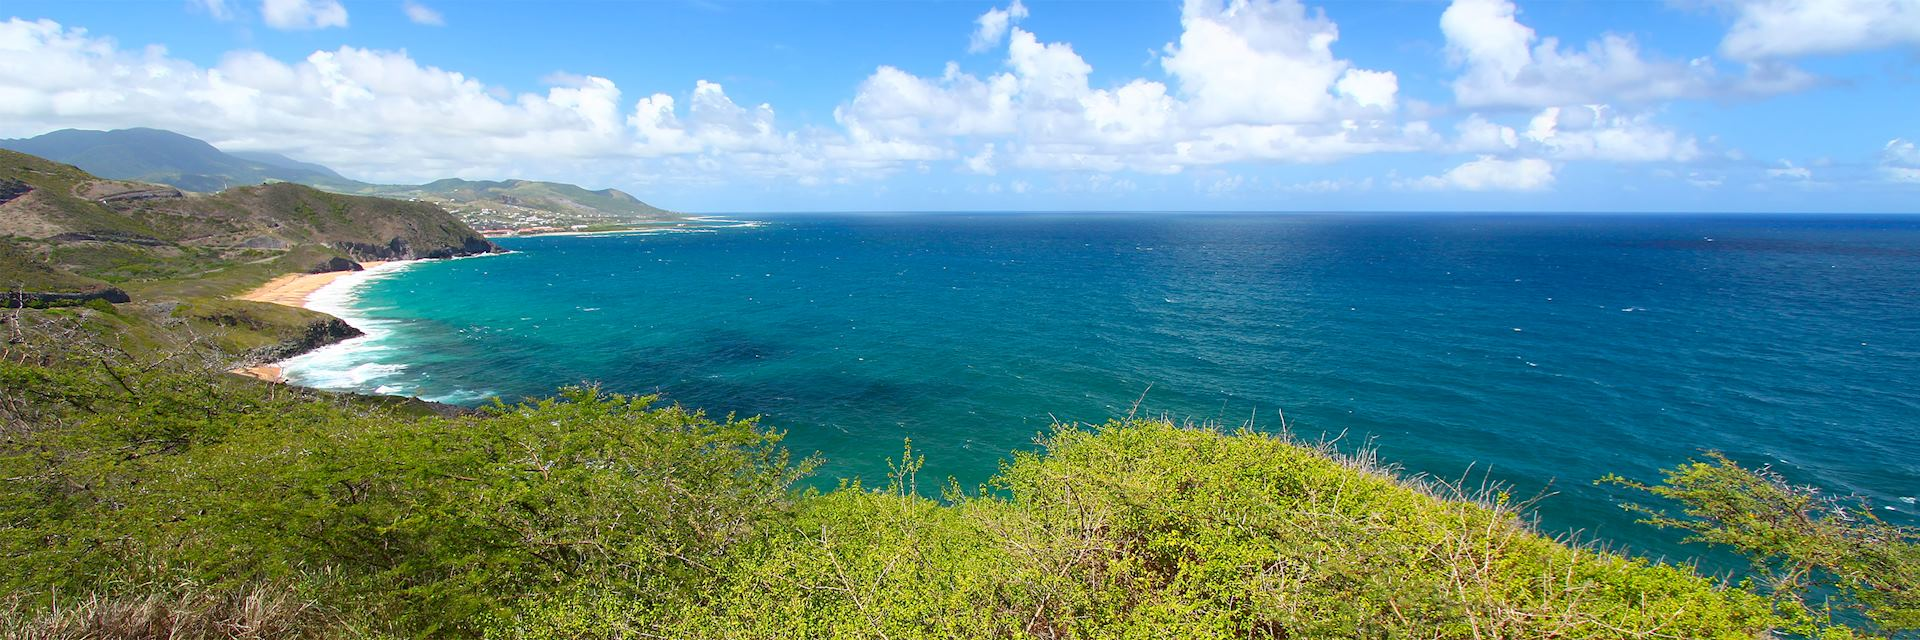 Saint Kitts coastline, Saint Kitts and Nevis